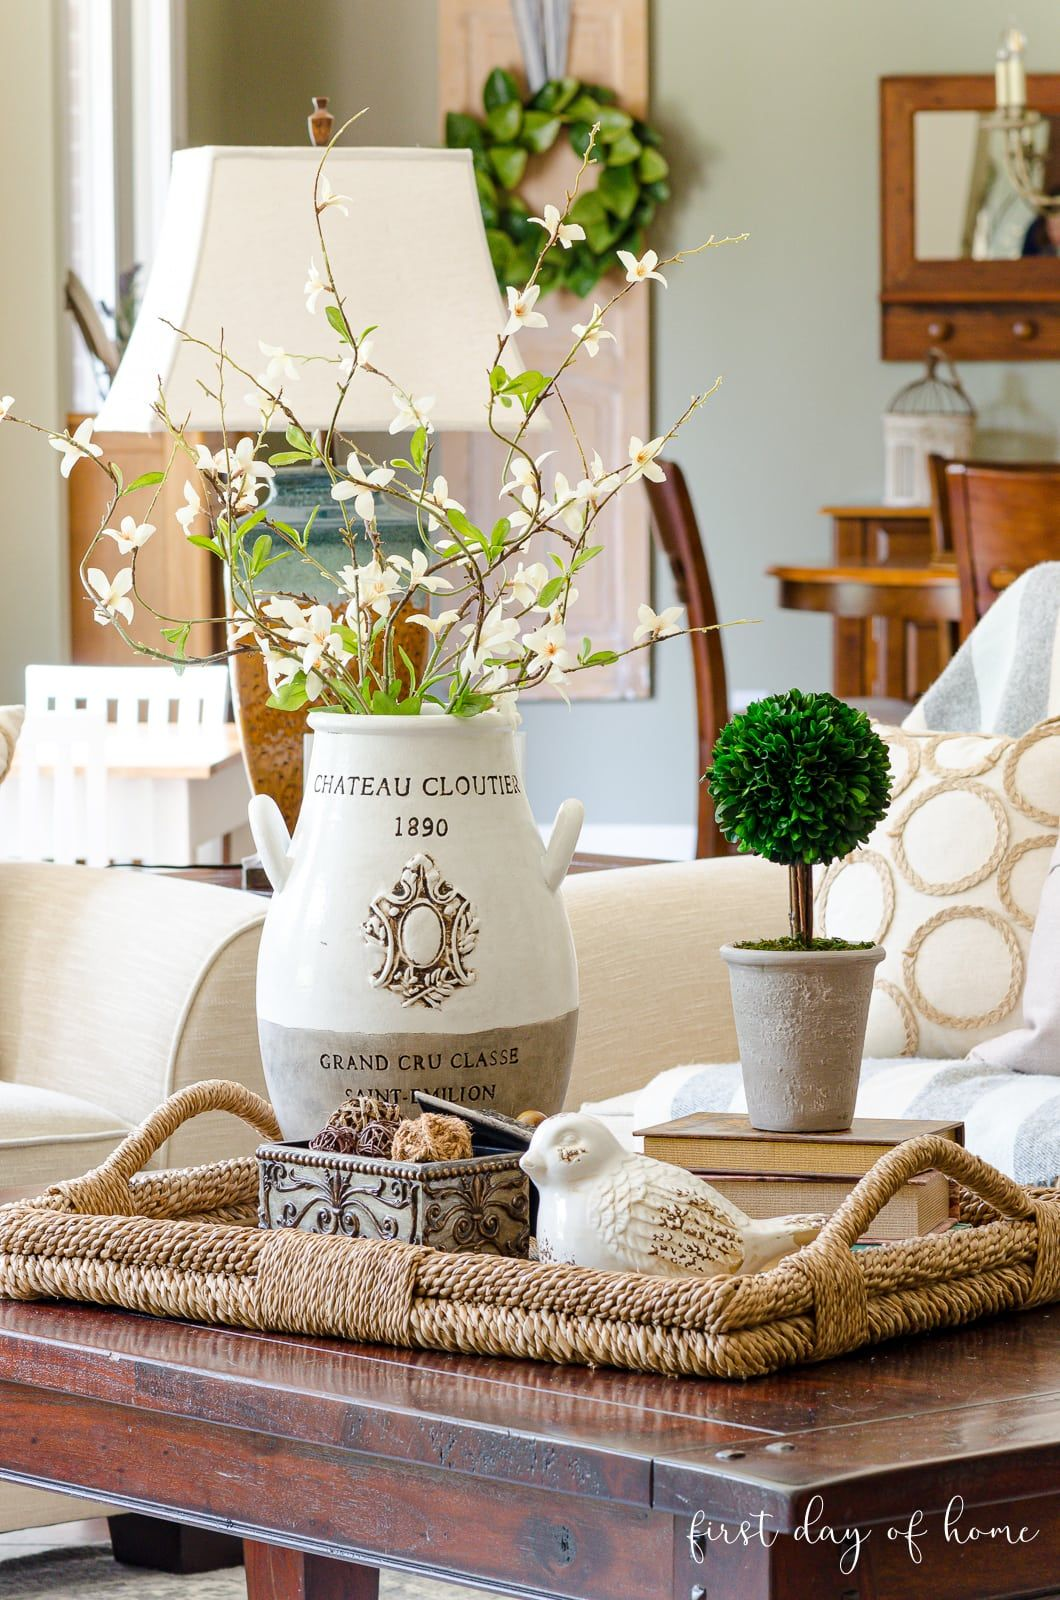 How To Create An Elegant Look With Coffee Table Decor Table Decorations Coffe Table Decor Decorating Coffee Tables